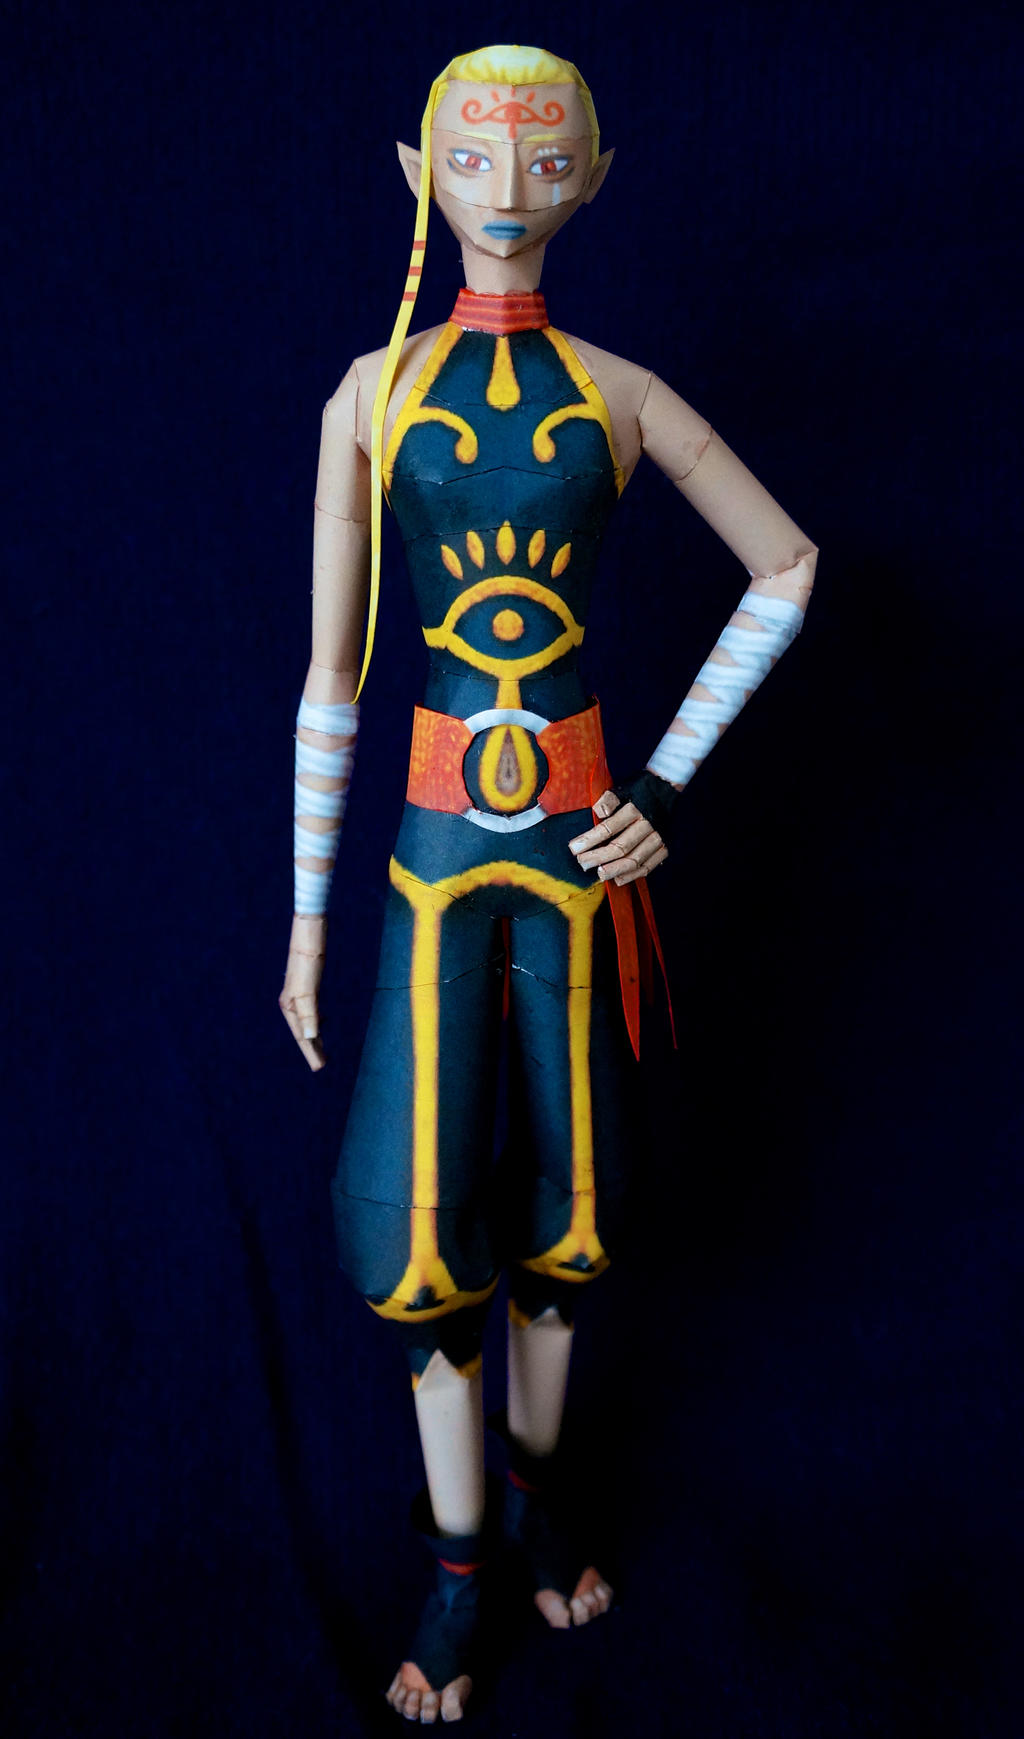 Impa - The Sage of Shadow by studioofmm